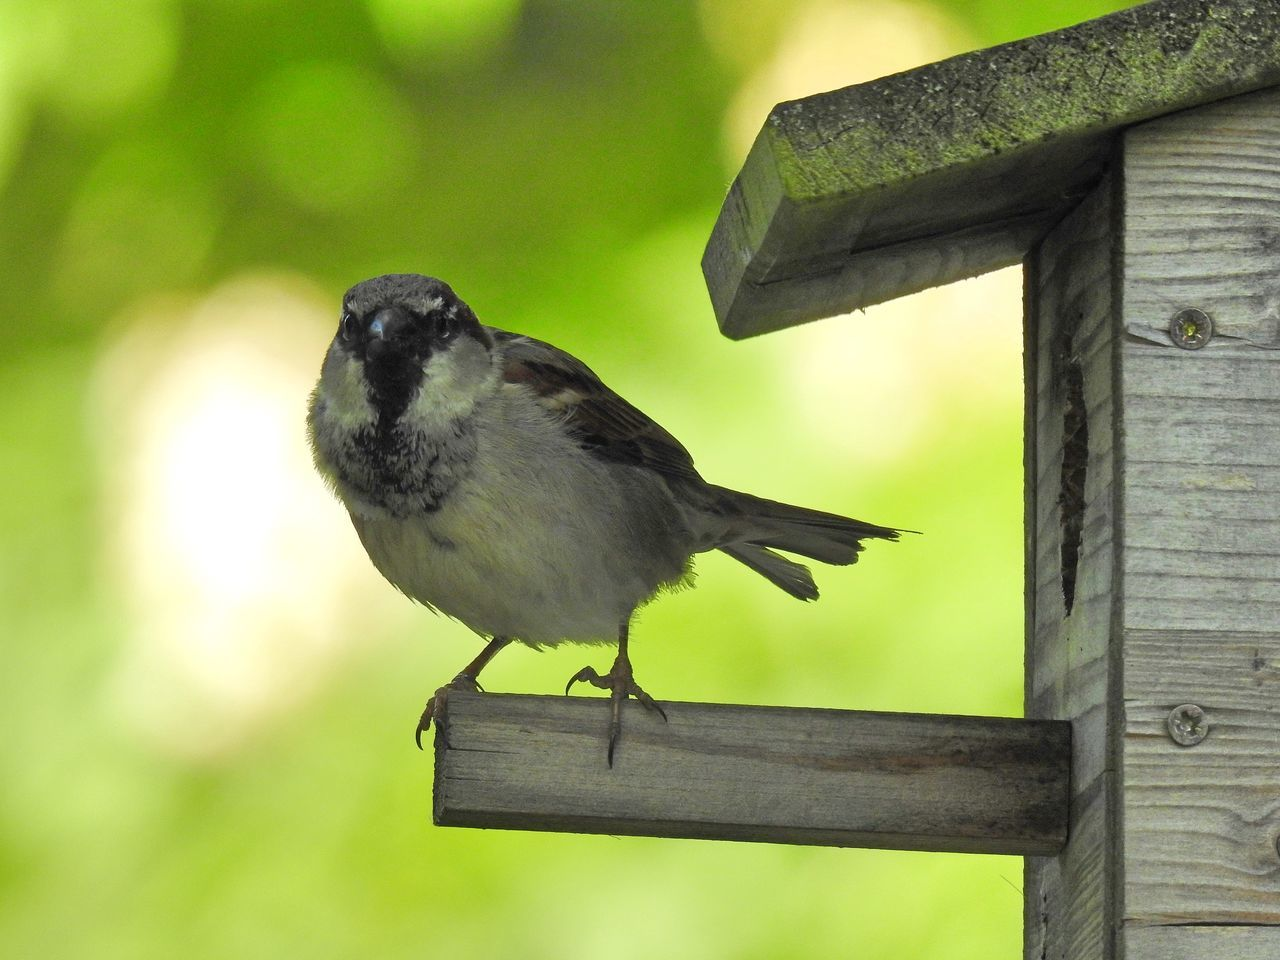 Alertness Animal Themes Animal Wildlife Animals In The Wild Bird Bird Photography Birds_collection Close-up Day Focus On Foreground Nature Nature Photography Nature_collection Naturelovers No People One Animal Outdoors Perching Sparrow Wood - Material